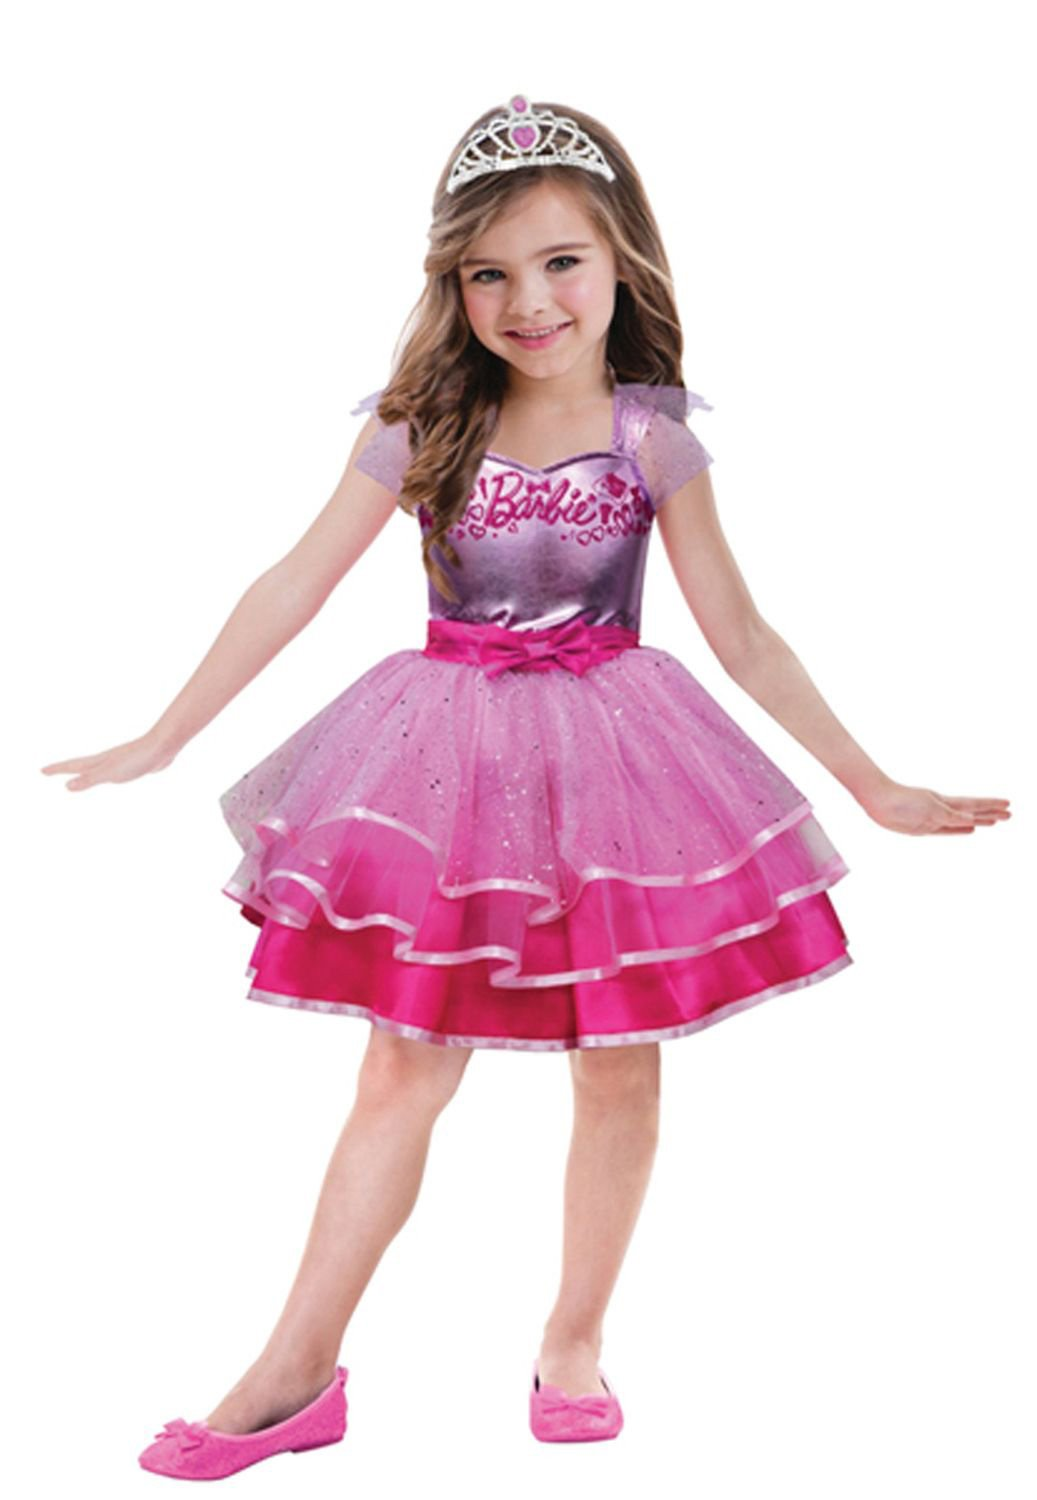 Barbie Ballet Costume to Fit (3-5 Years): Amazon.co.uk: Toys & Games